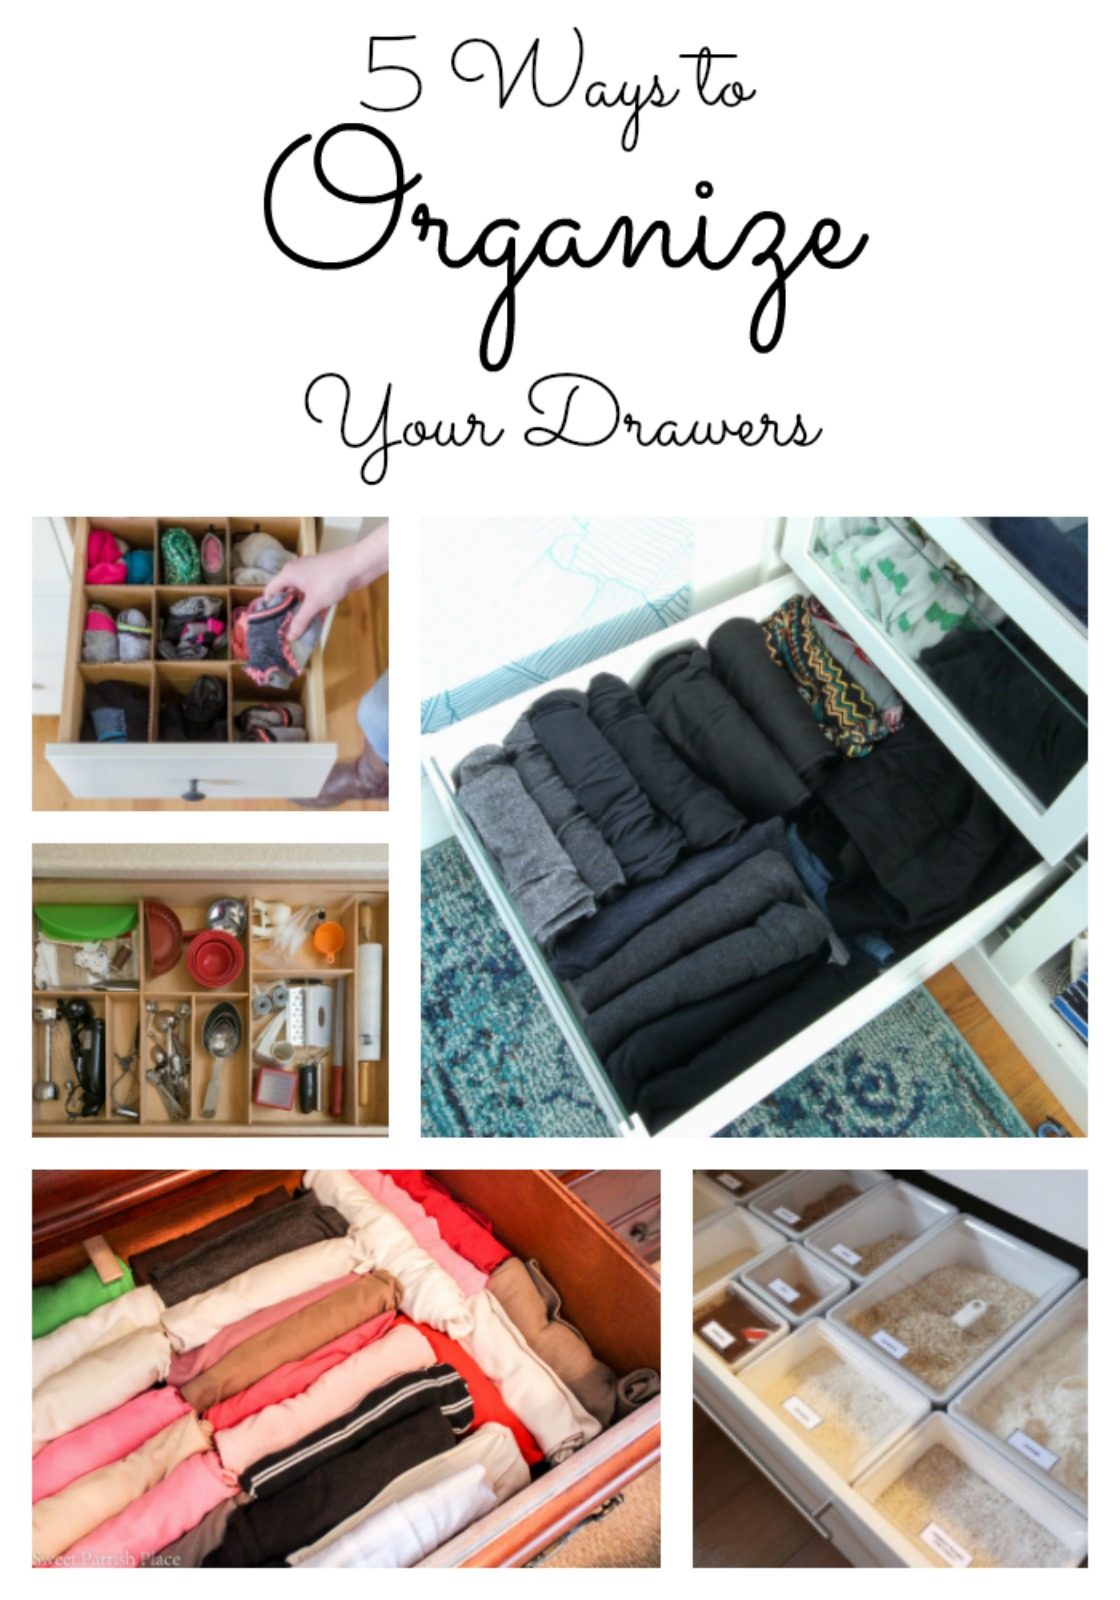 Today I'm sharing 5 creative ideas you can use to organize your drawers.